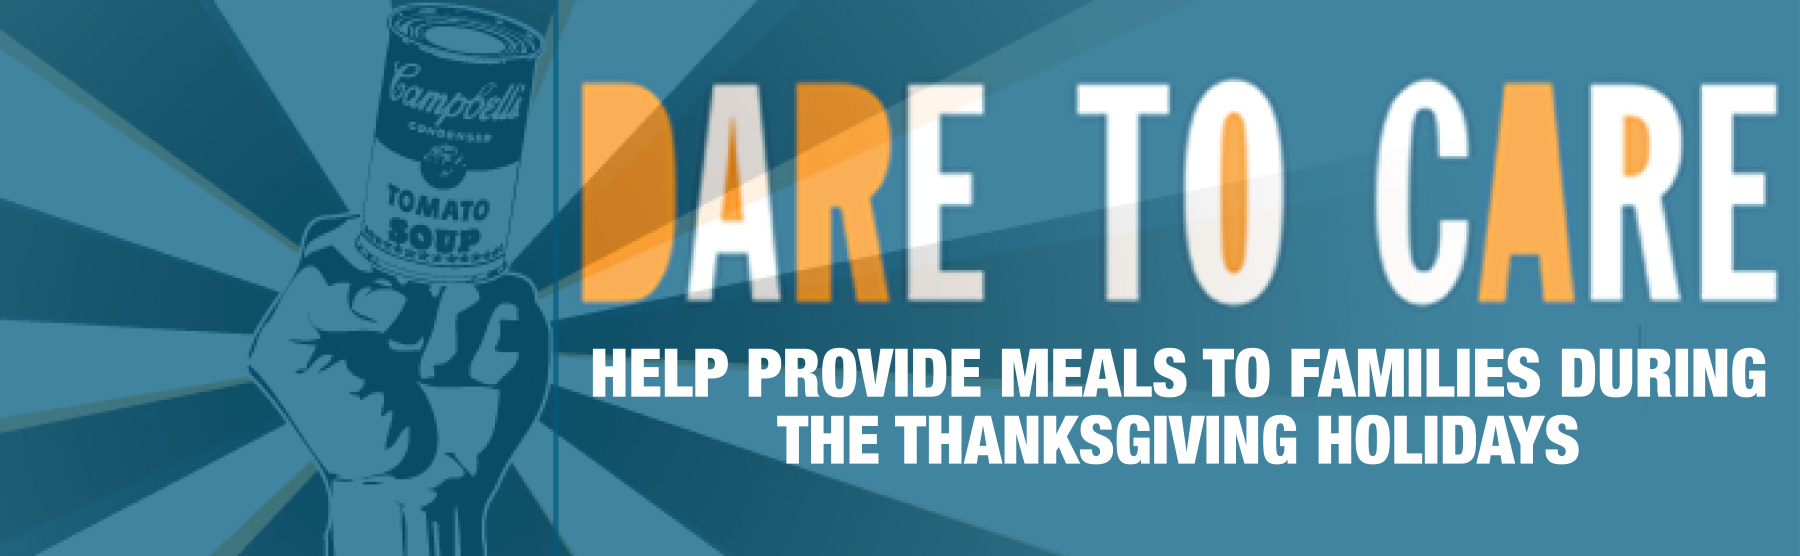 """UNL has teamed up with the Food Bank of Lincoln to participate in the annual """"Dare to Care"""" food drive."""